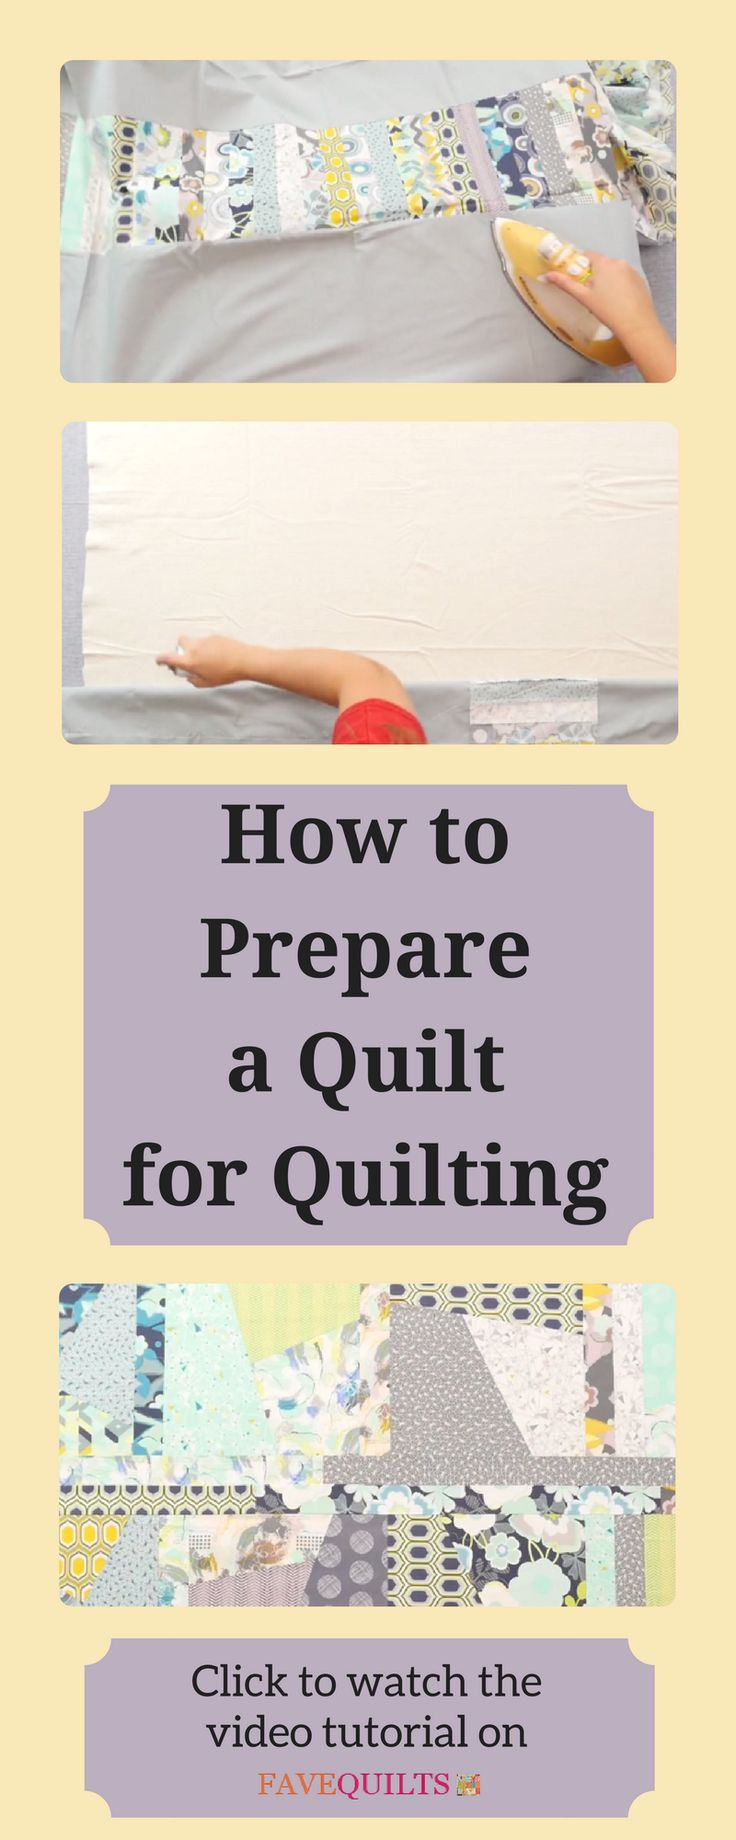 This video will show you how to get it ready for quilting whether you are finishing your quilt yourself or sending it to a long arm quilter.